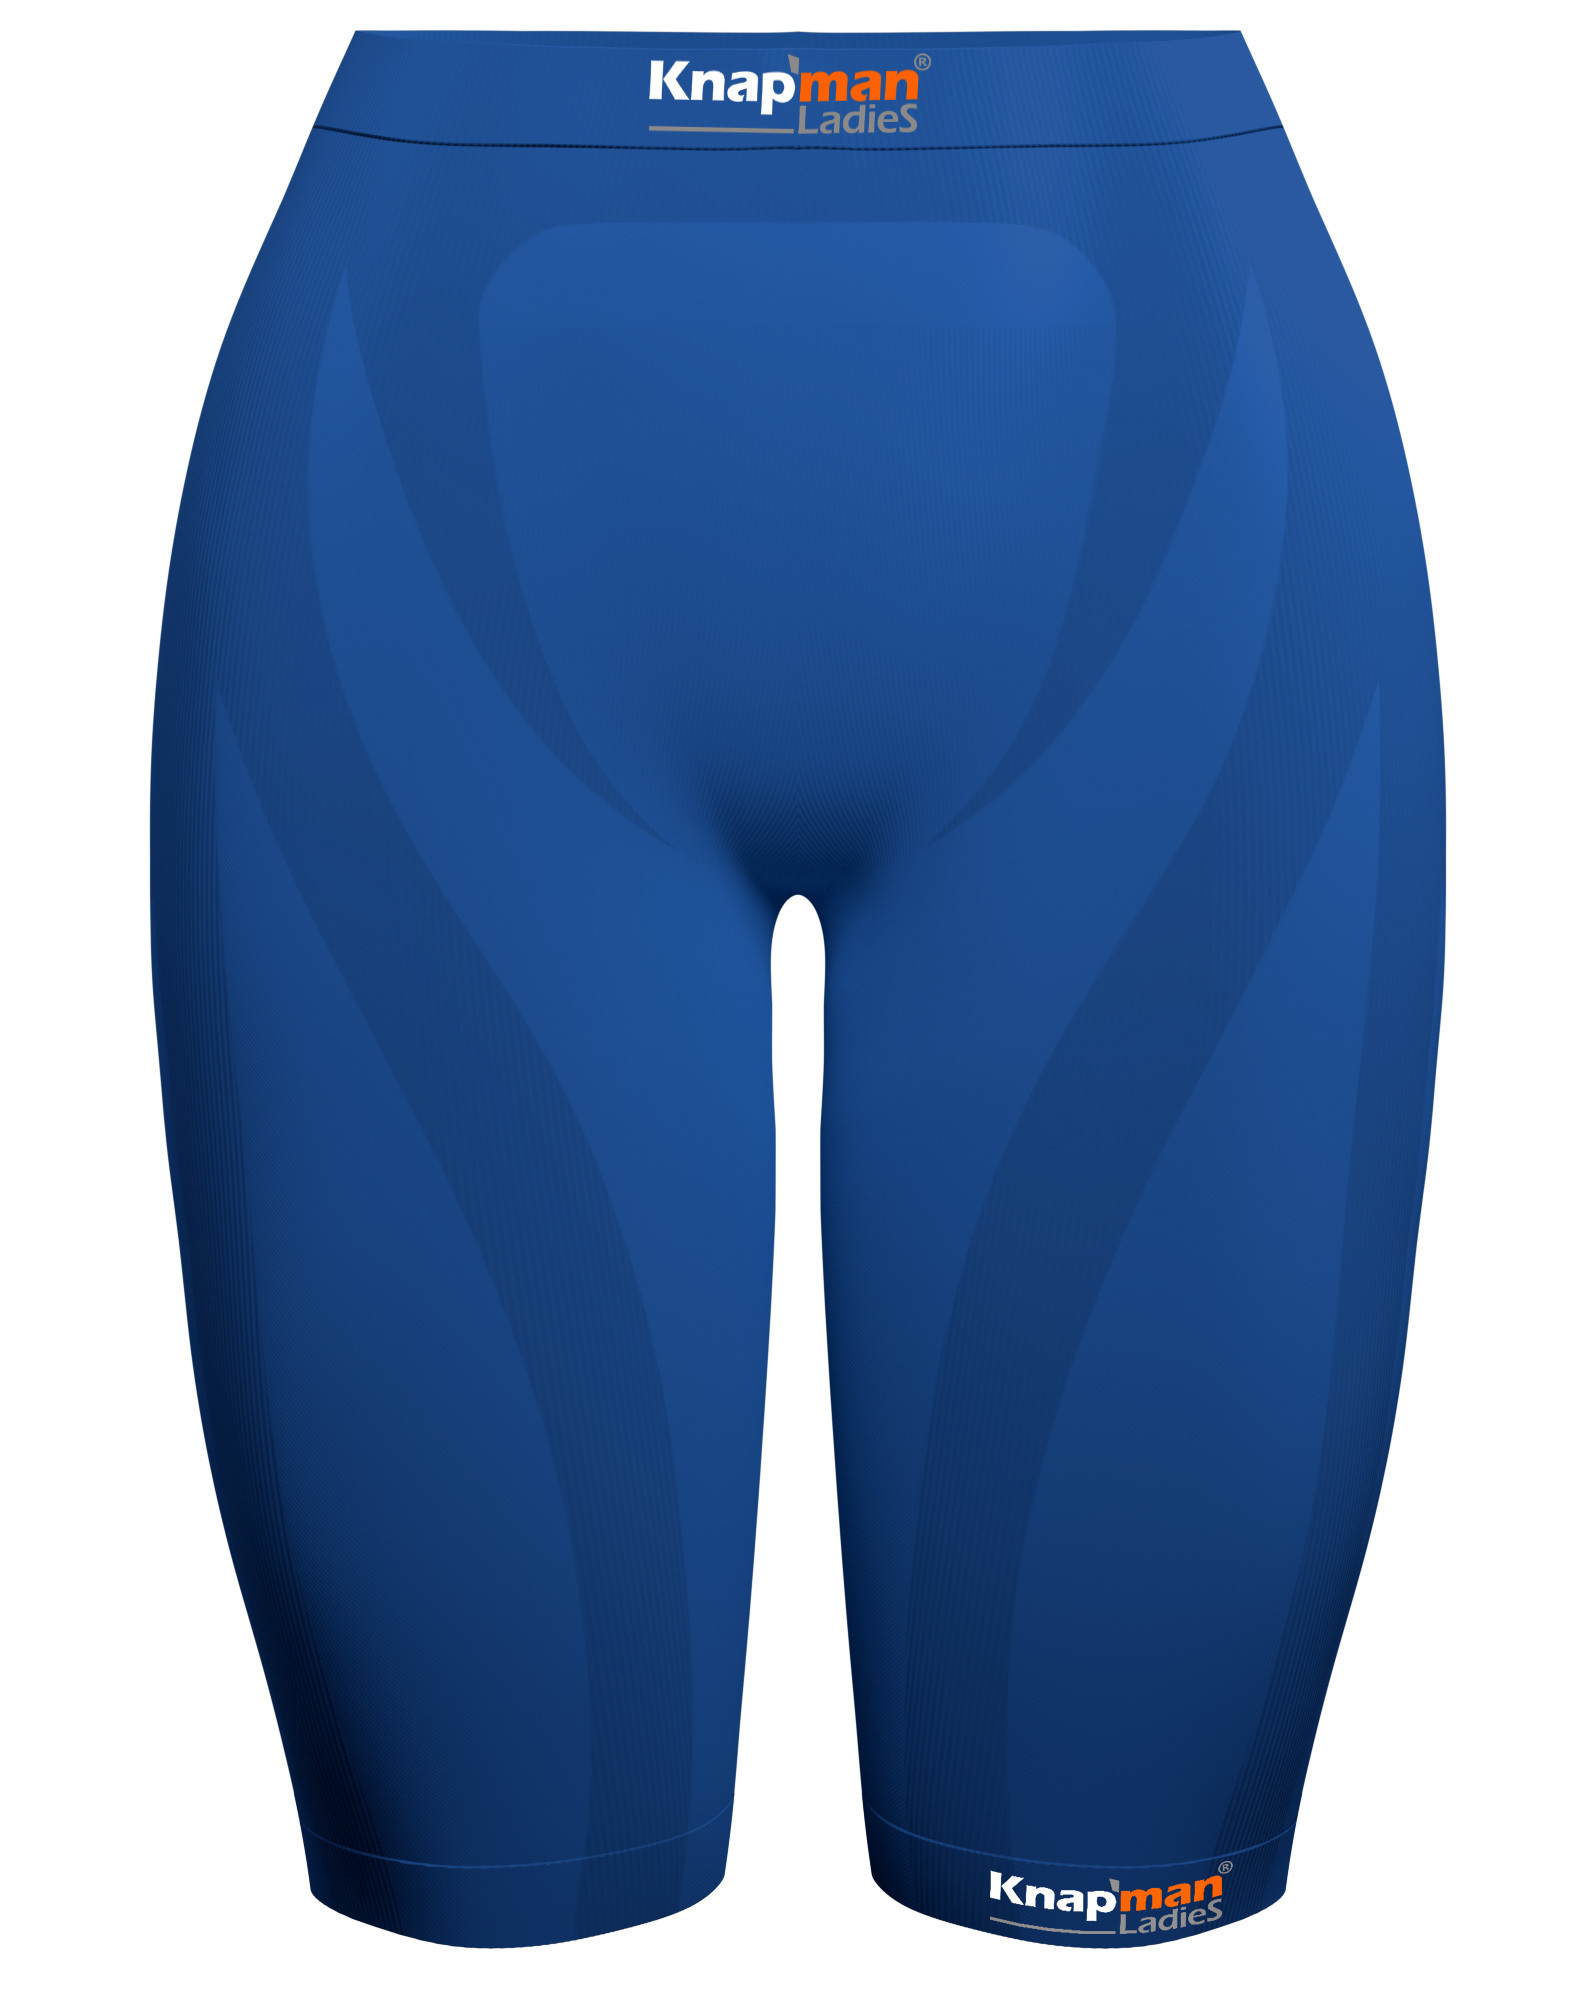 Knap'man Damen Kompressionsshorts 45% Royal blue